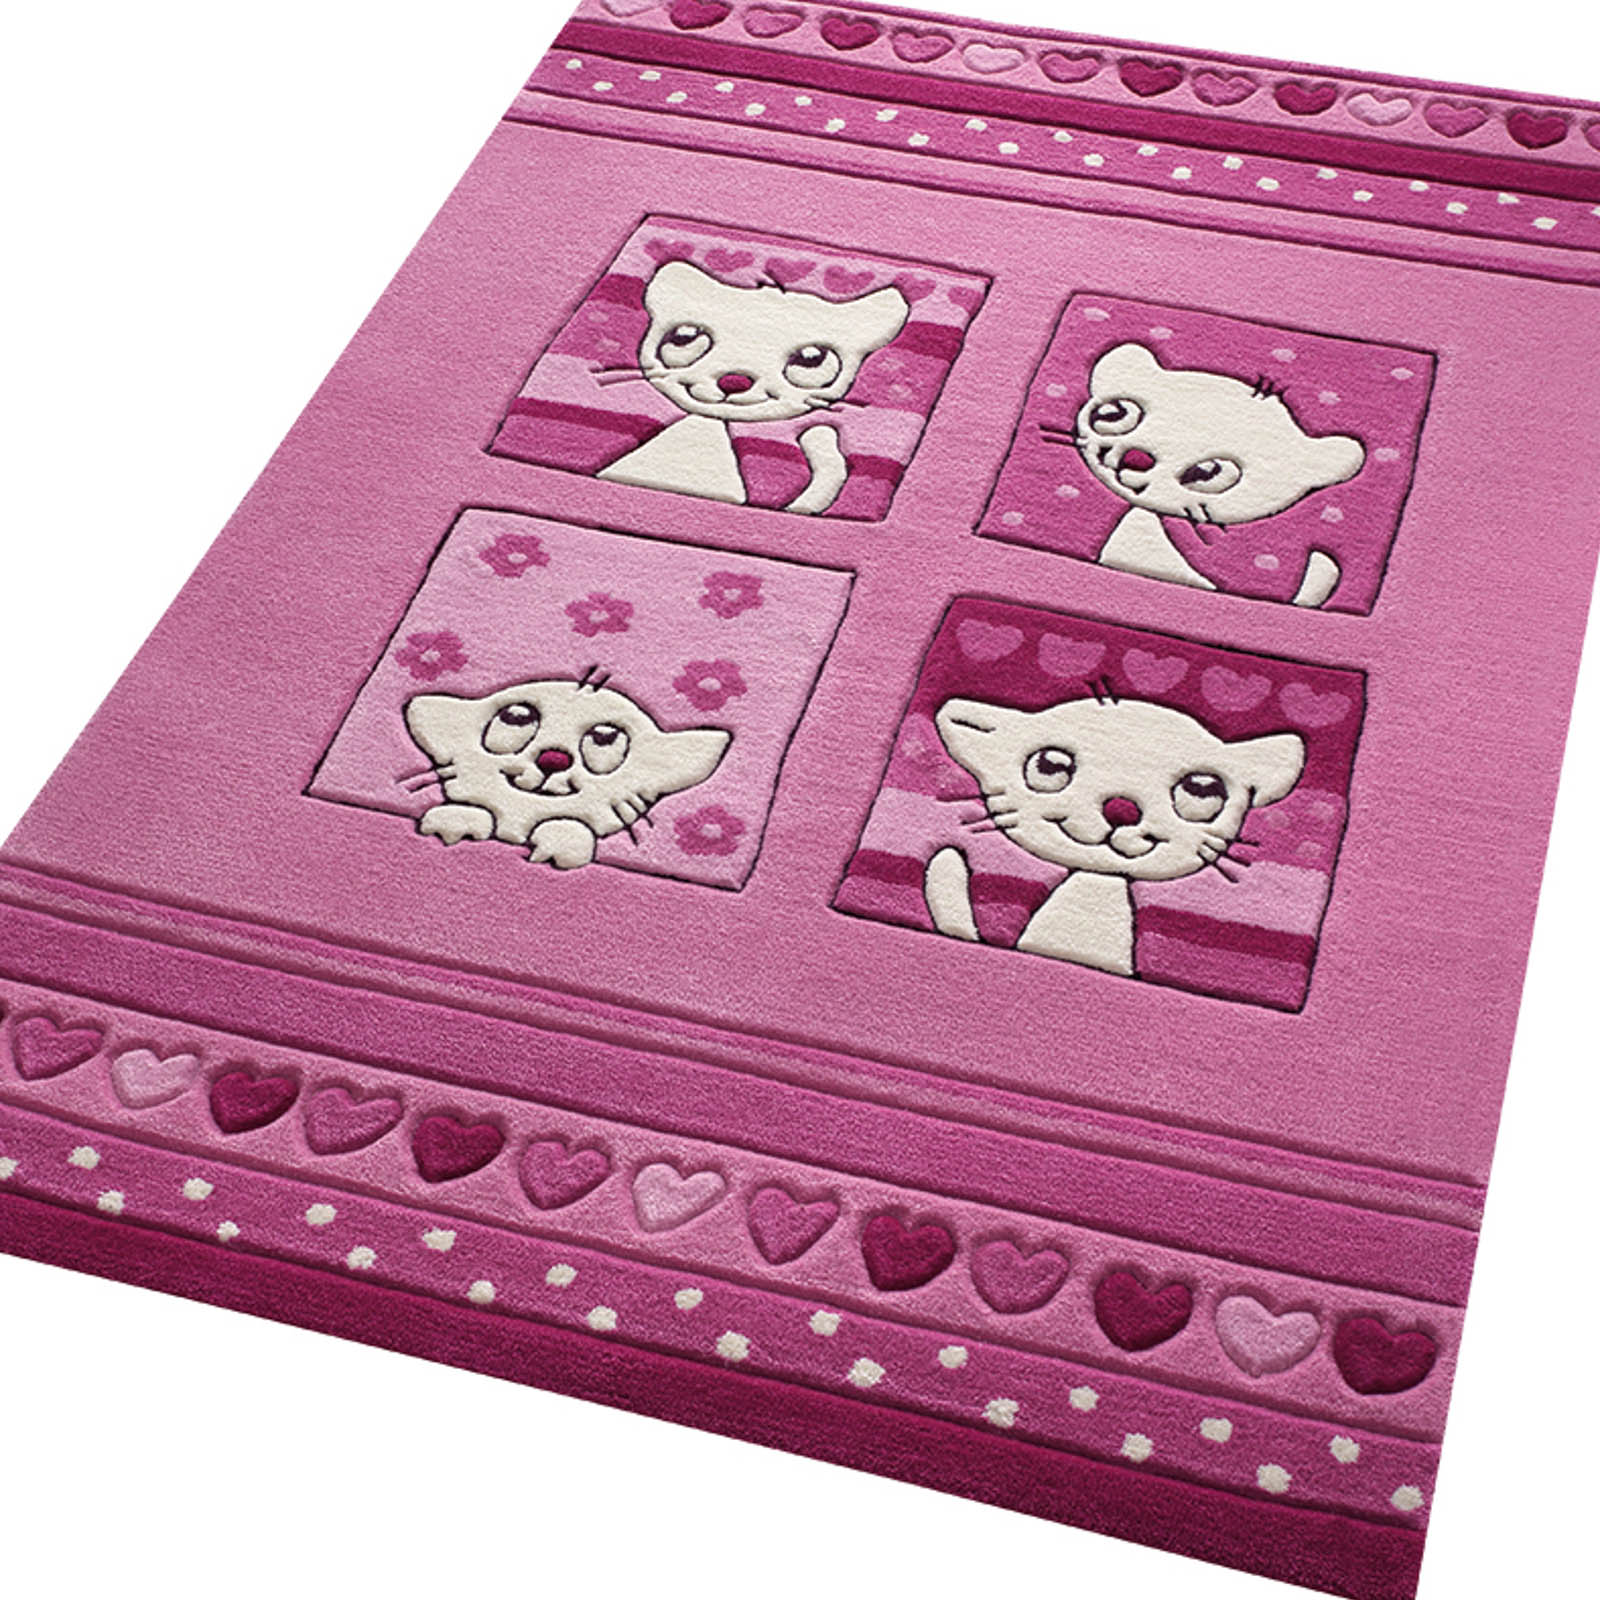 Kitty Kat Rugs 3988 02 in Pink